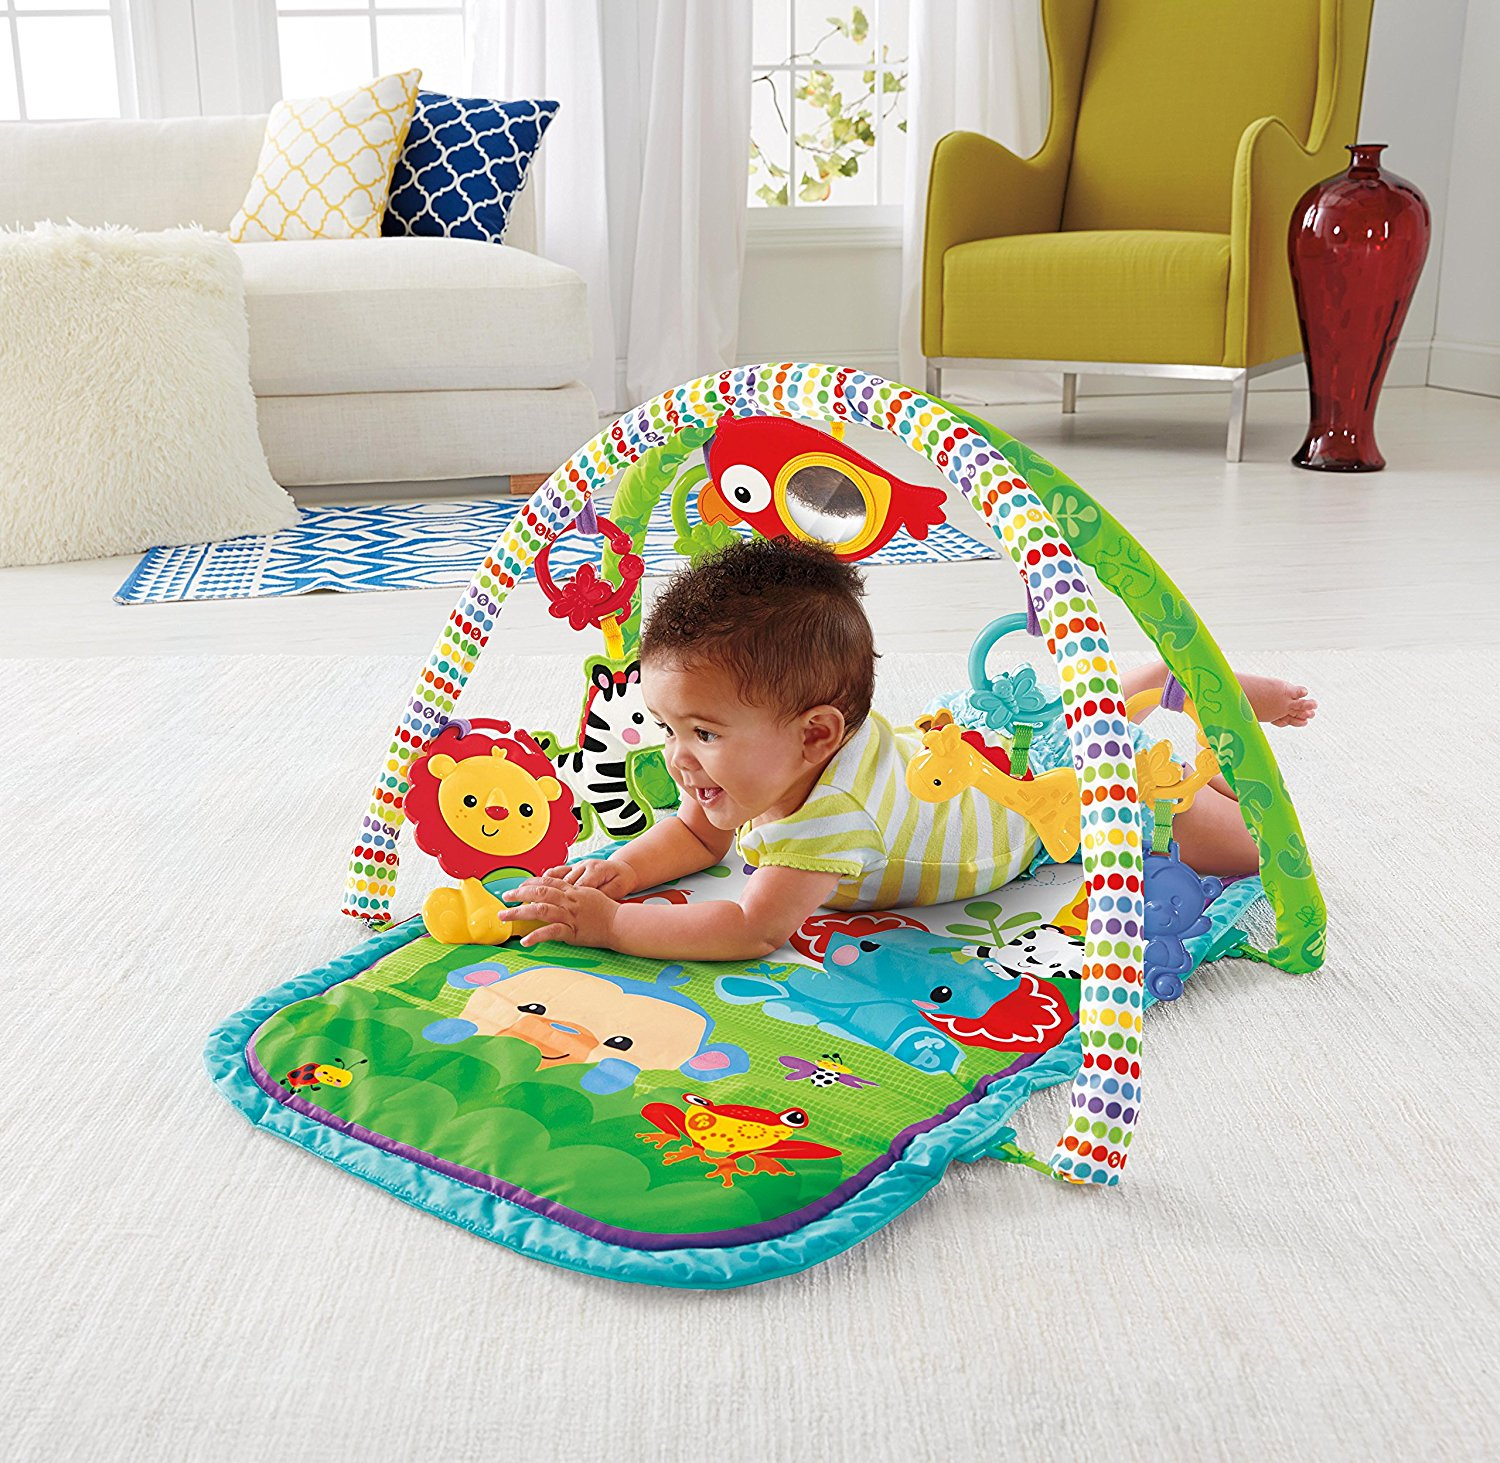 Fisher Price Gymnastic mat 3 in 1 - CHP85